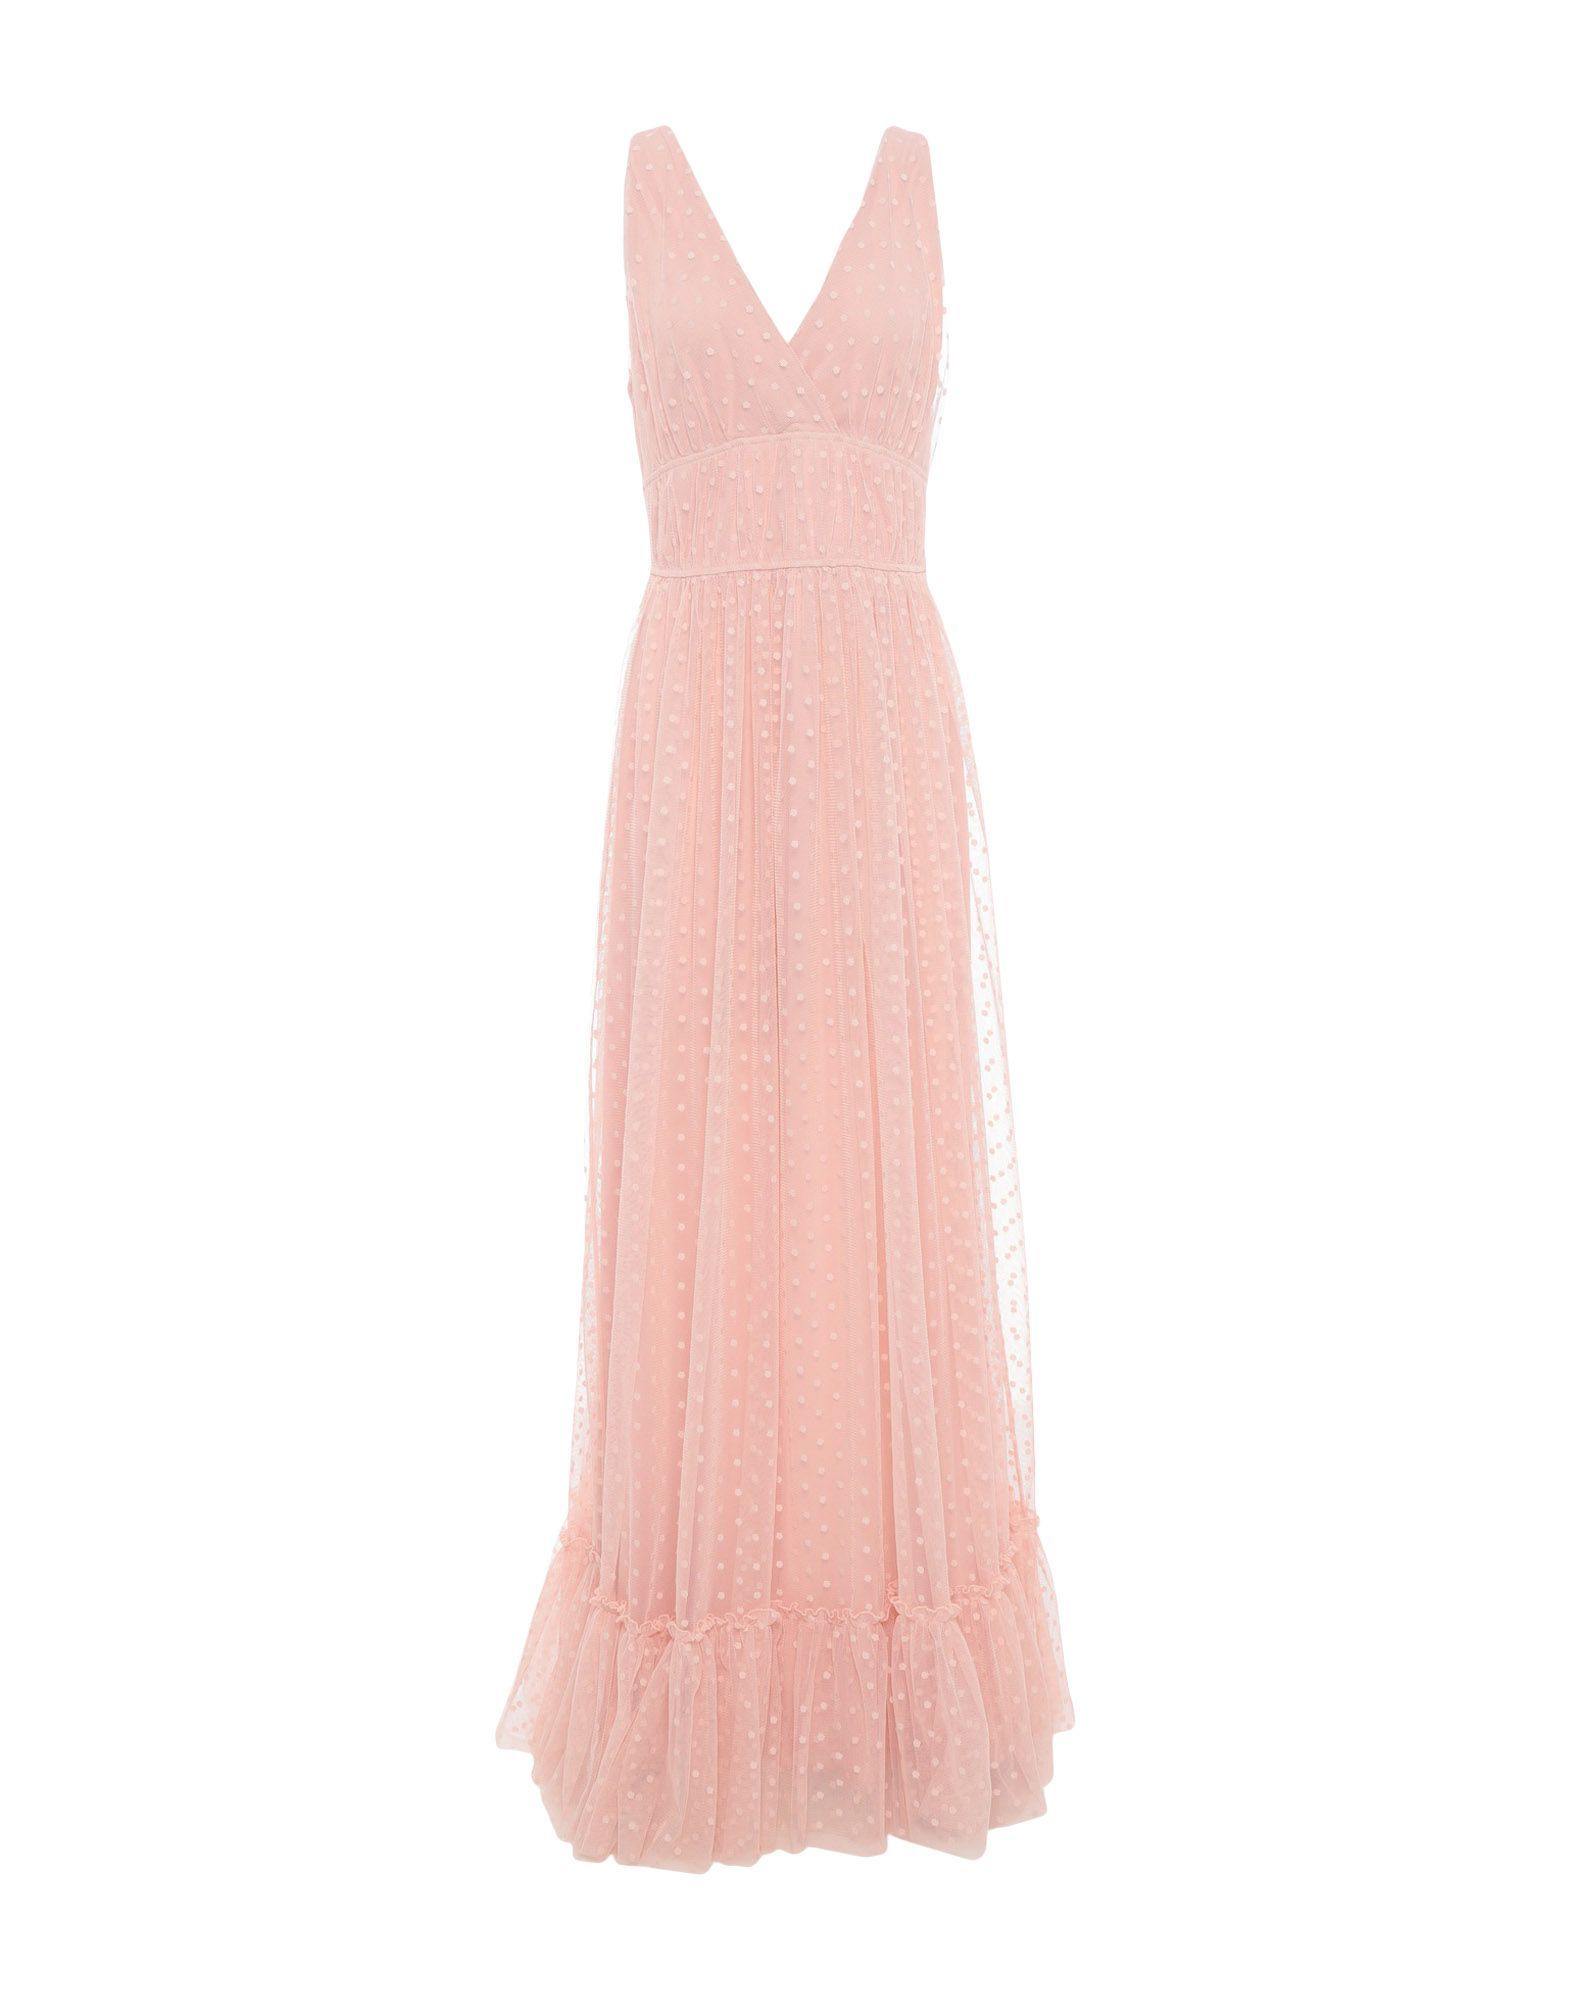 Rue 8Isquit Pale Pink Full Length Dress